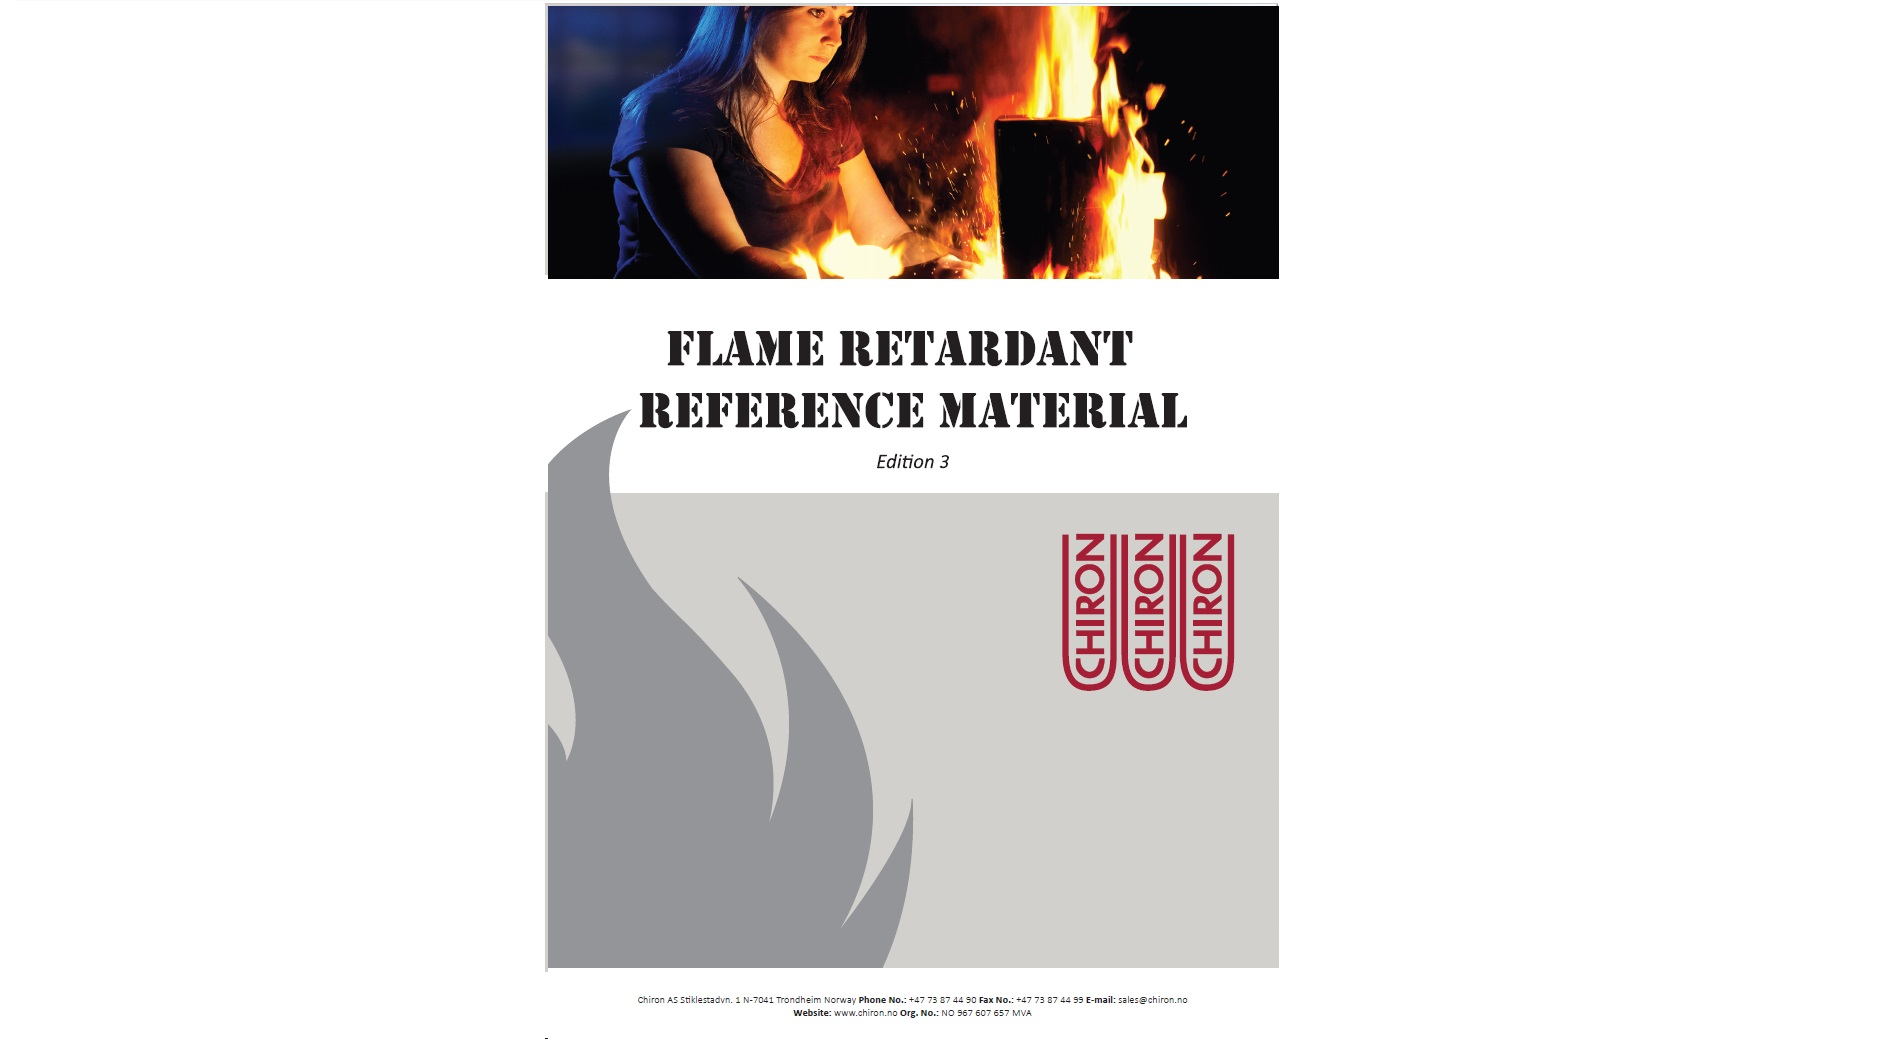 Flame retardant reference material, Edition 3